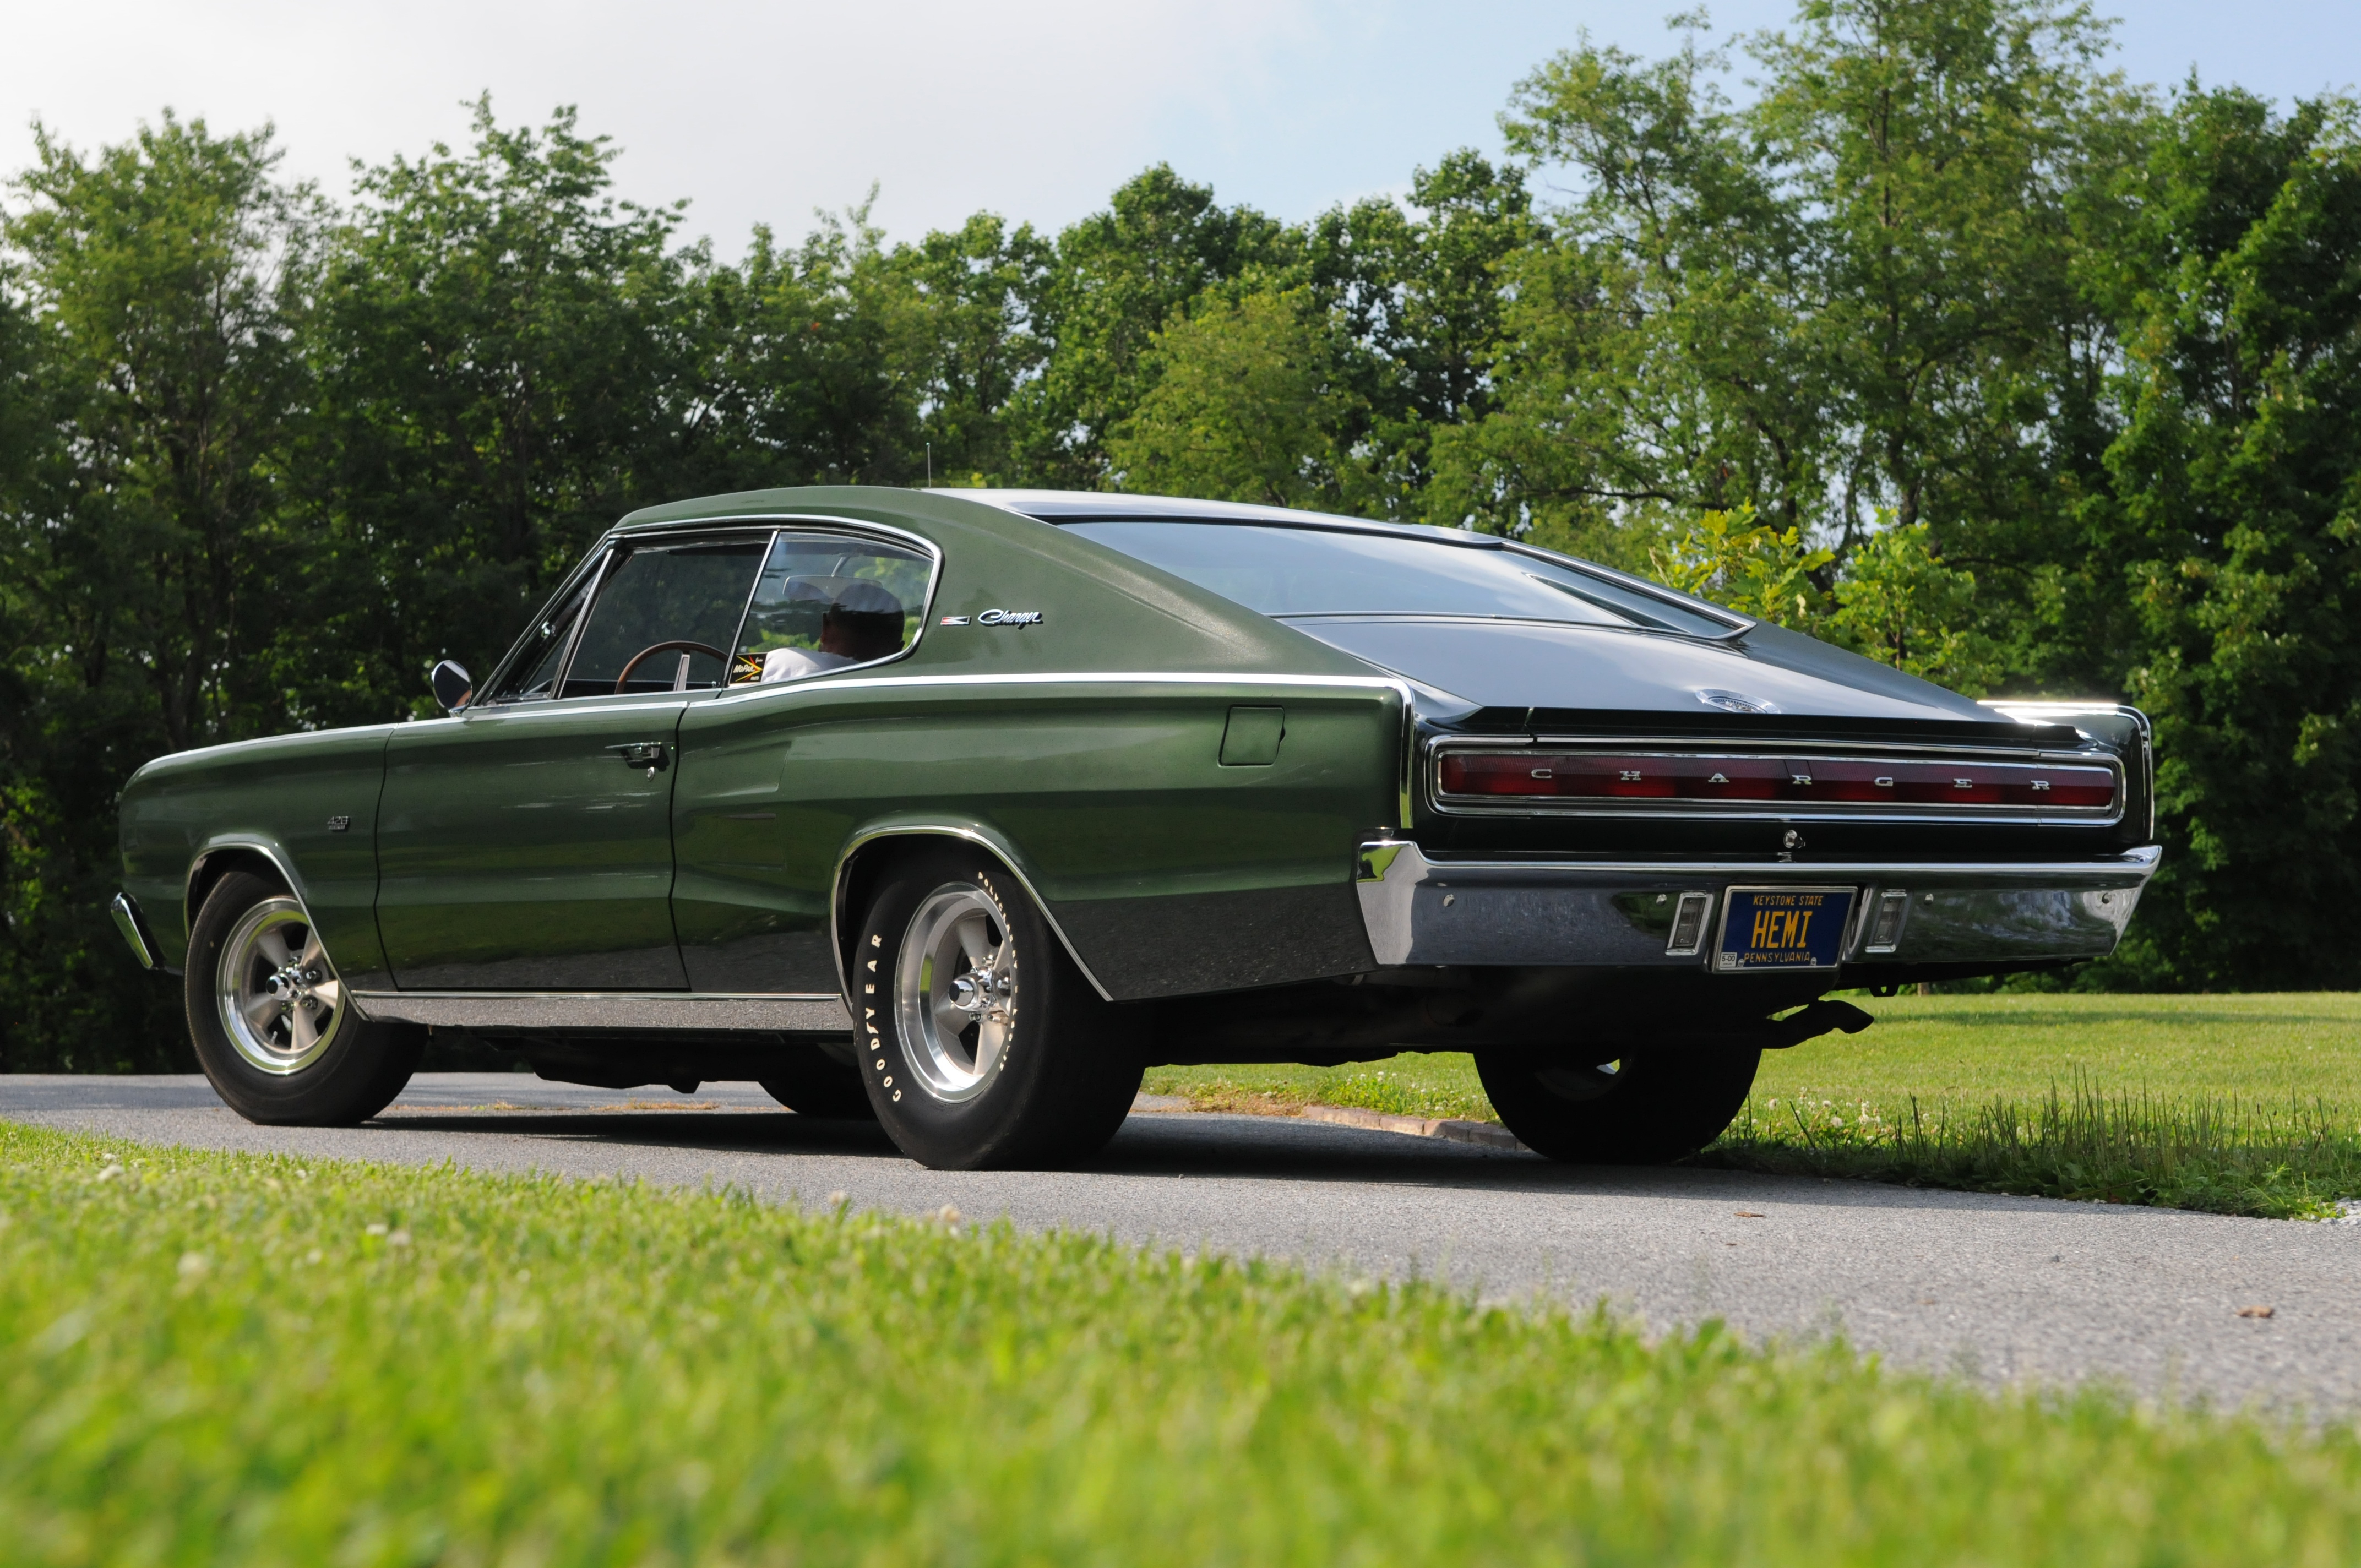 bf8a0f8a6c6 Unrestored 1966 Dodge Charger Hemi Has Unique Super Stock Drag Racing  History - Hot Rod Network